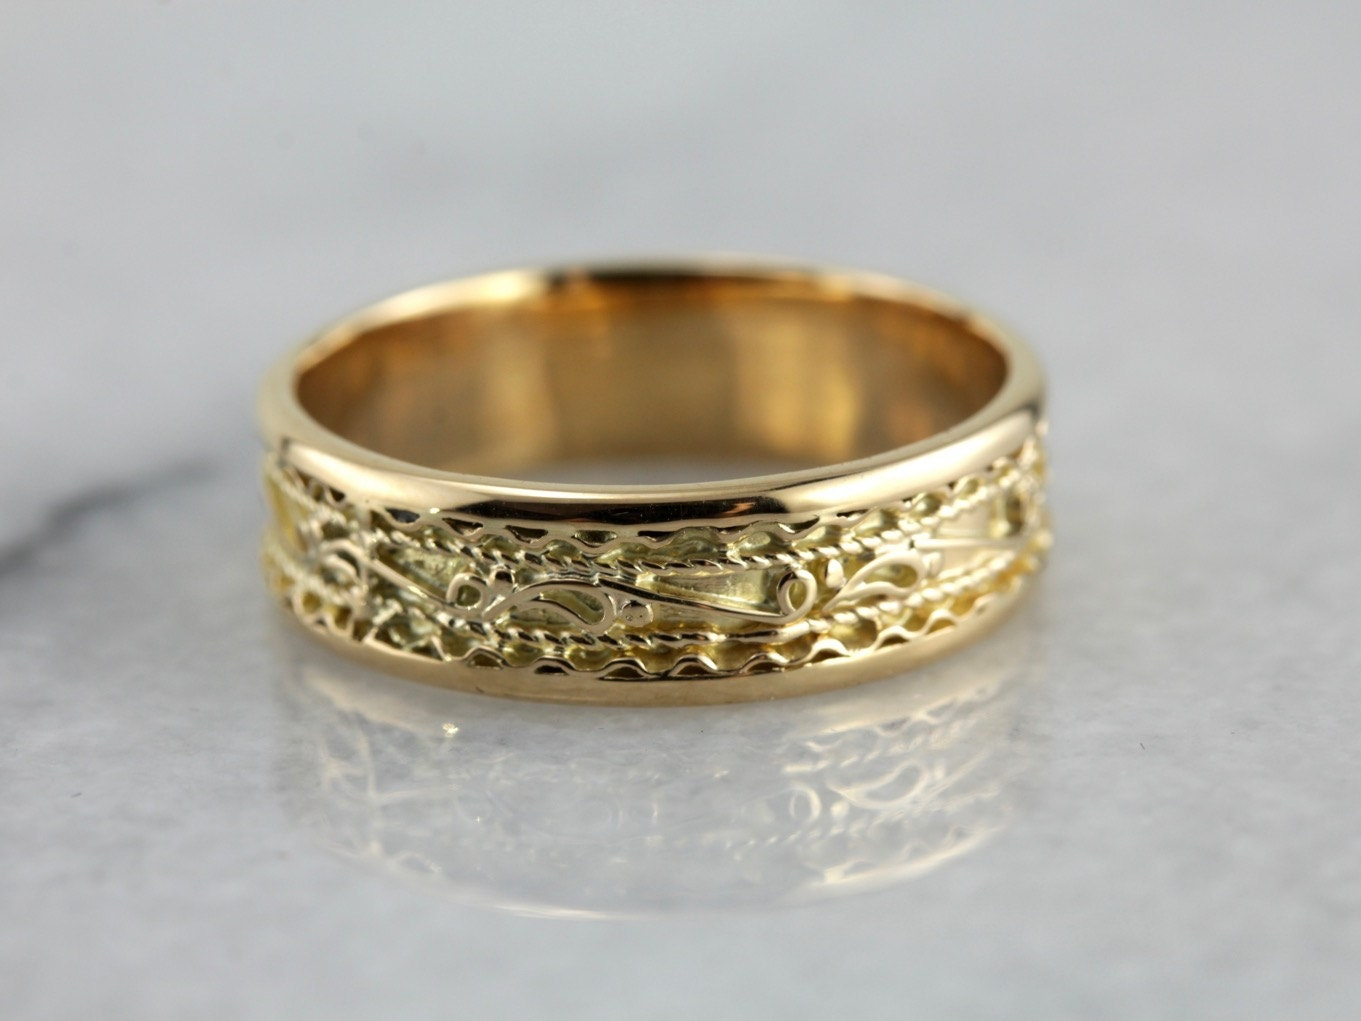 ornate yellow gold s wedding band dmya3w p